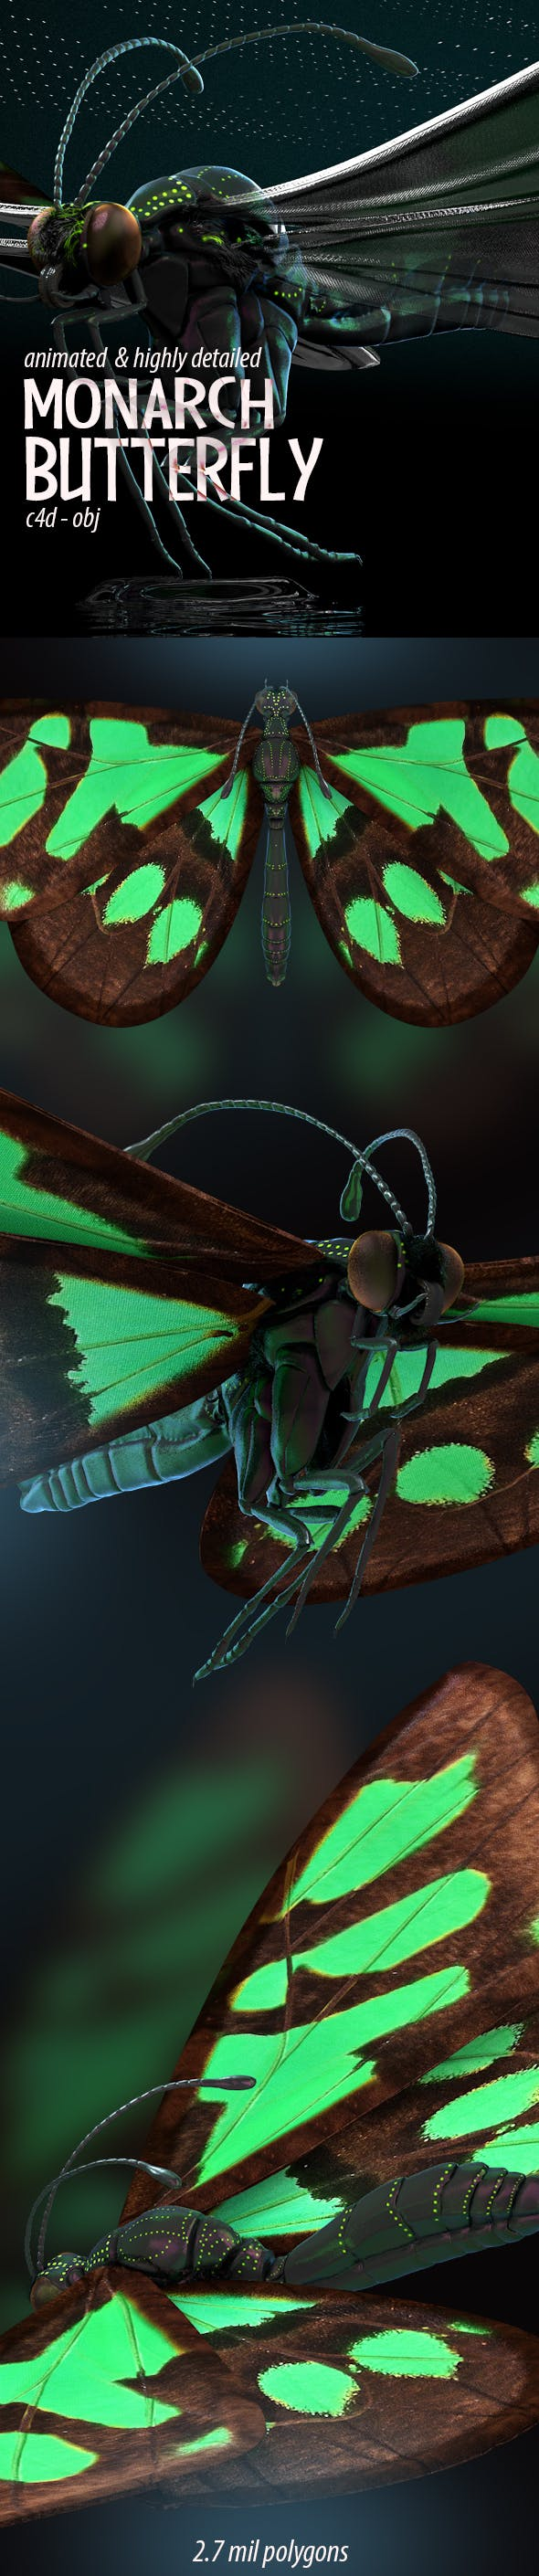 Butterfly Flapping Wings 3D Model - 3DOcean Item for Sale